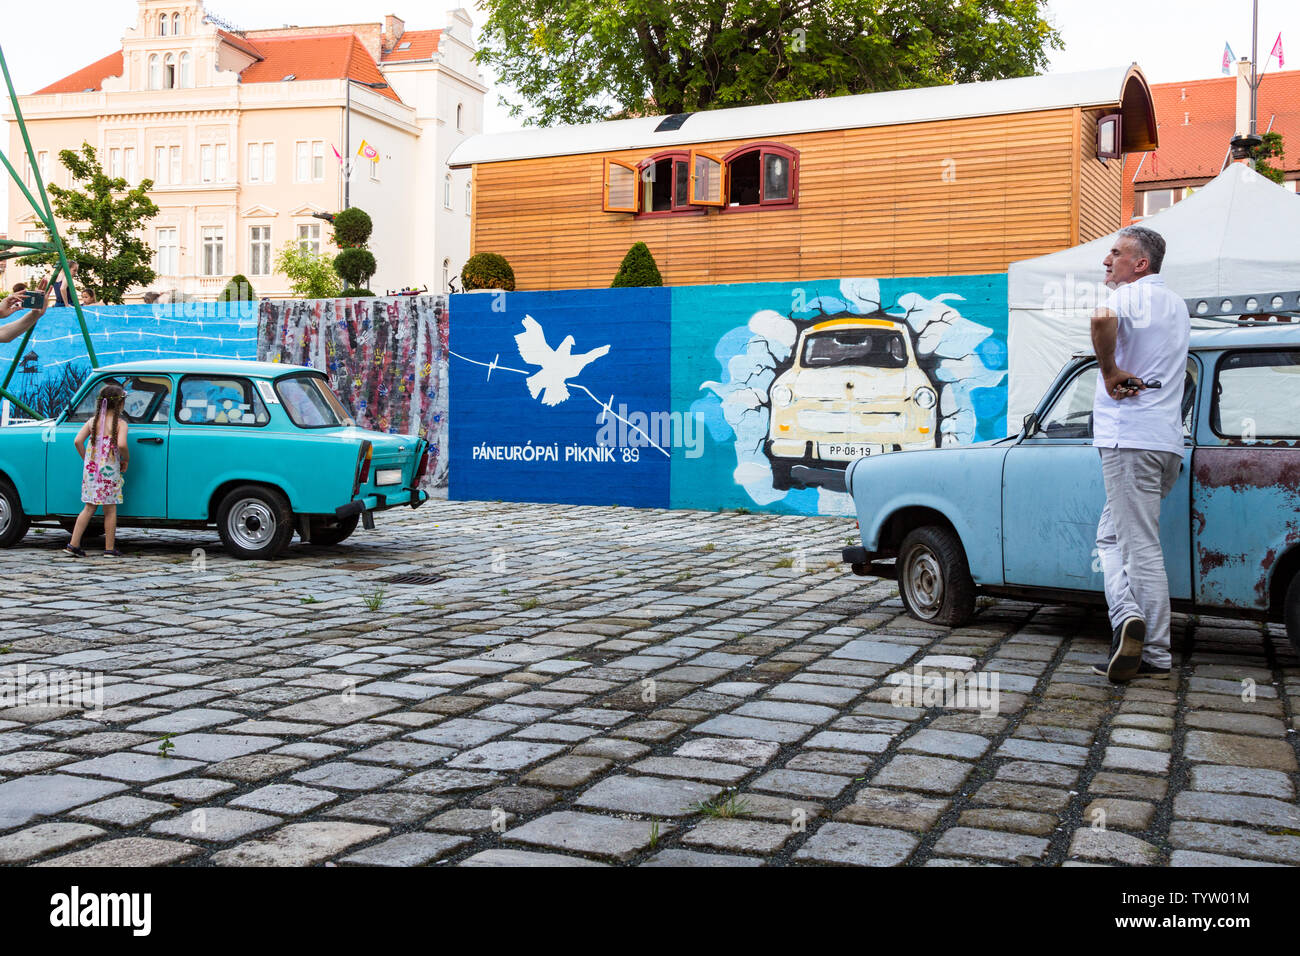 Street paintings, Trabant cars at outdoor exhibition in remembrance of  Pan-European Picnic 1989 - Stock Image